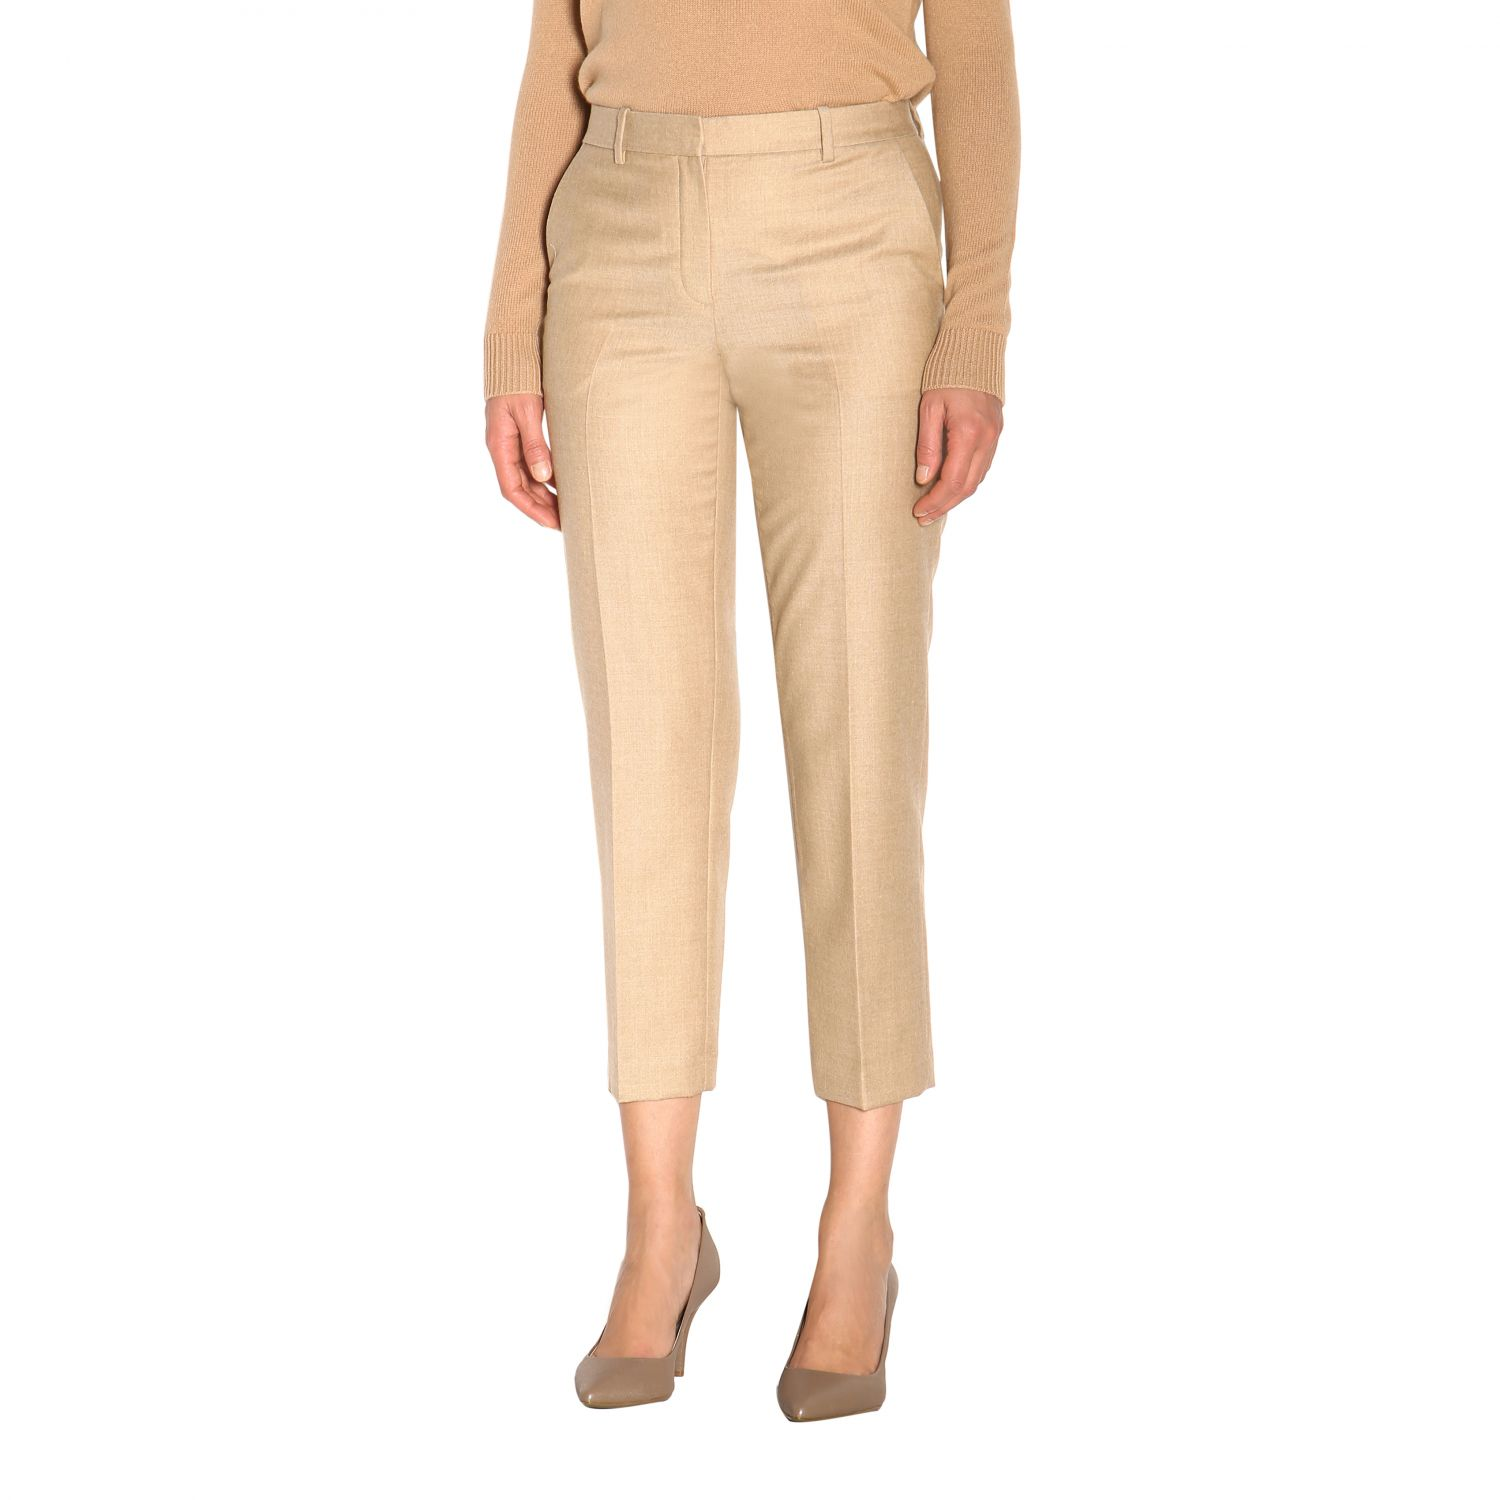 Trousers women Theory sand 4